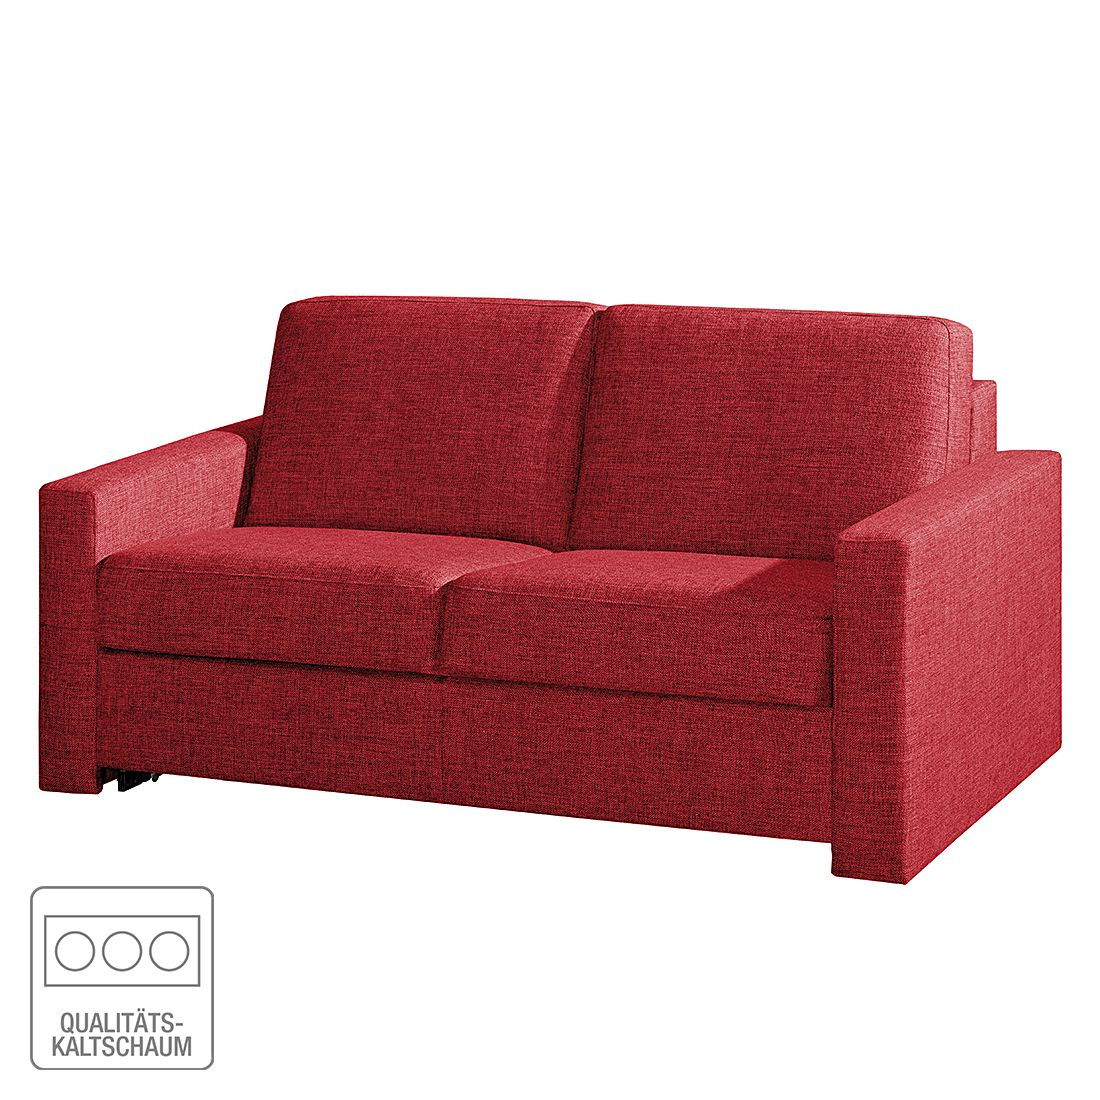 schlafsofa louis webstoff rot breite 168 cm modoform g nstig online kaufen. Black Bedroom Furniture Sets. Home Design Ideas